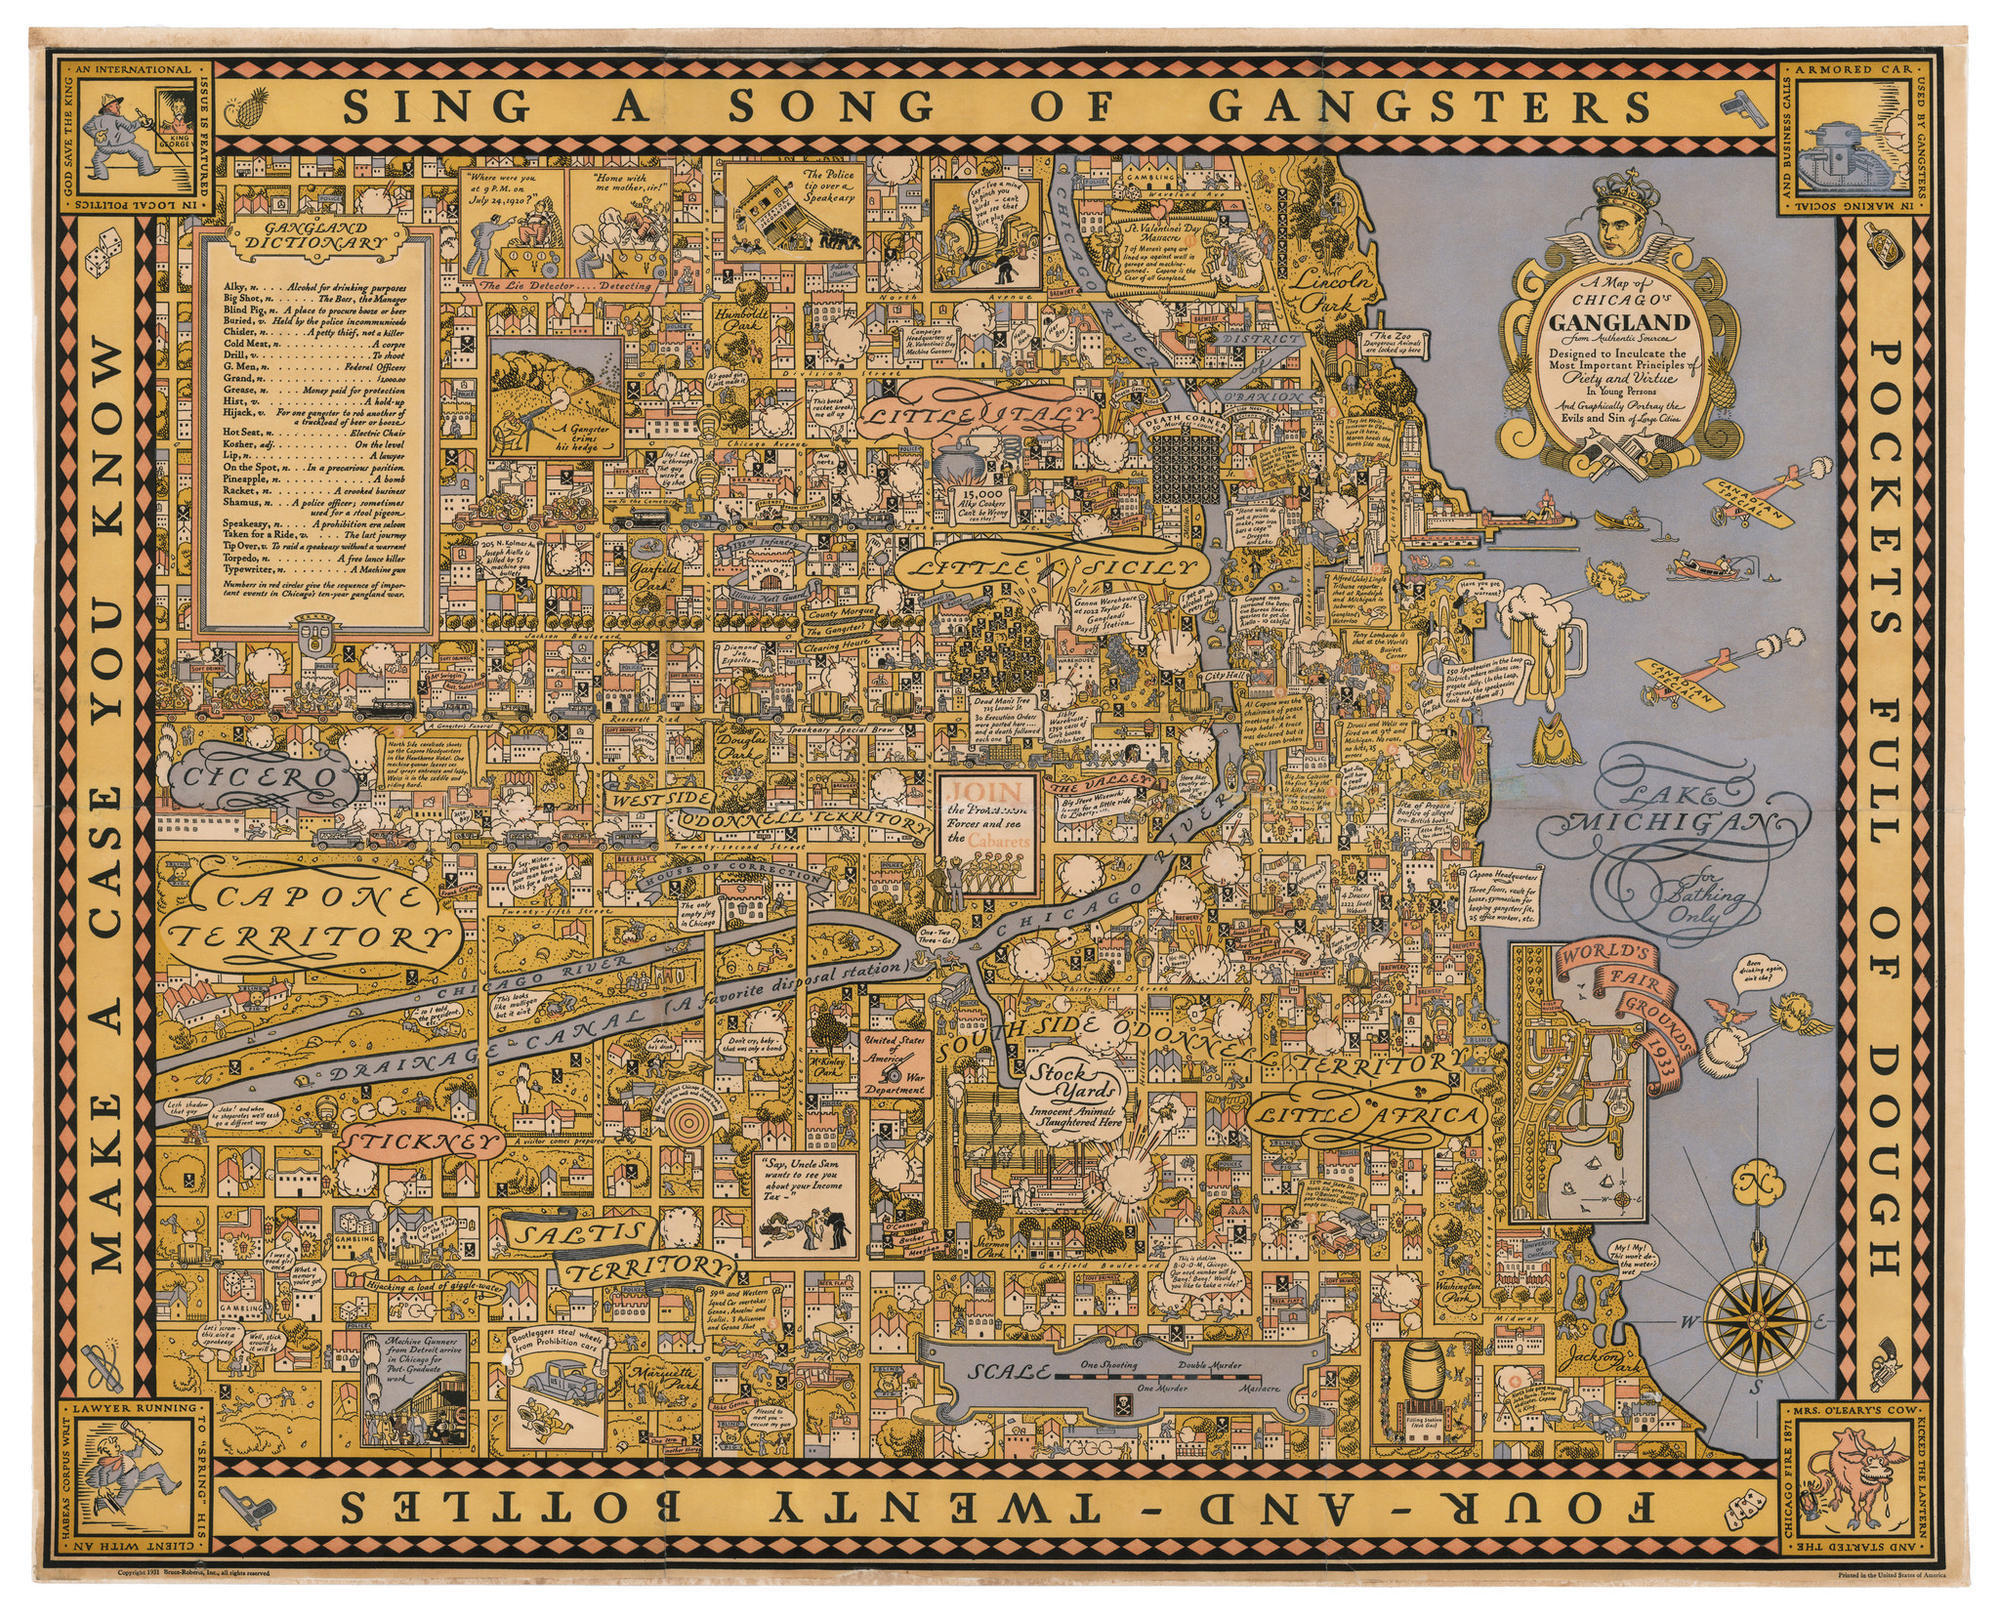 A Rare Map Of Chicagos Gangland Could Be Yours For - Rare old maps for sale